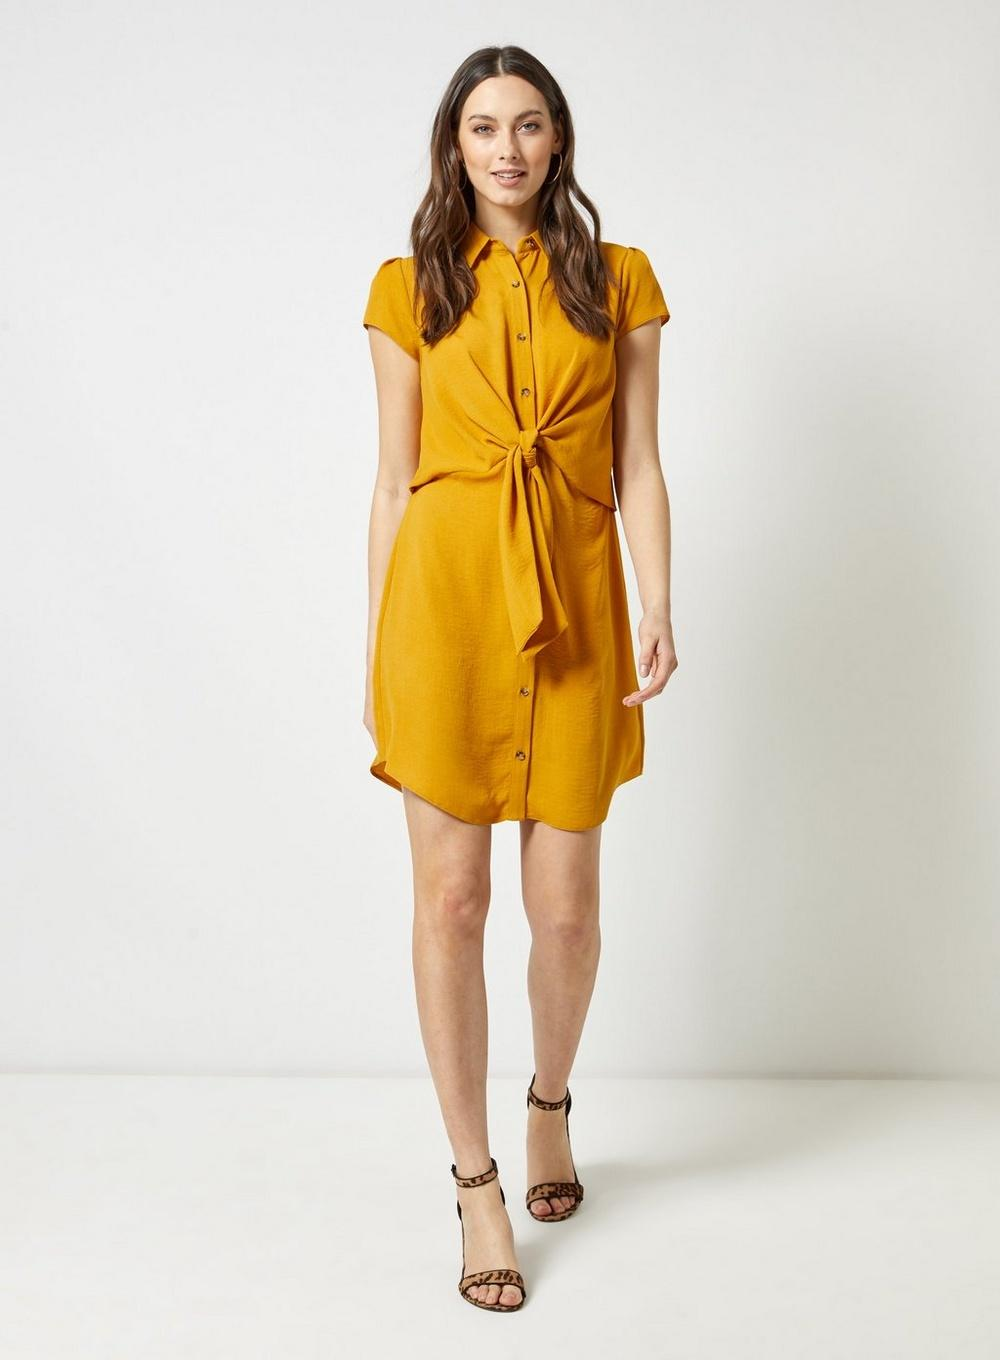 df54c90618 Lyst - Dorothy Perkins Yellow Tie Linen Shirt Dress in Orange